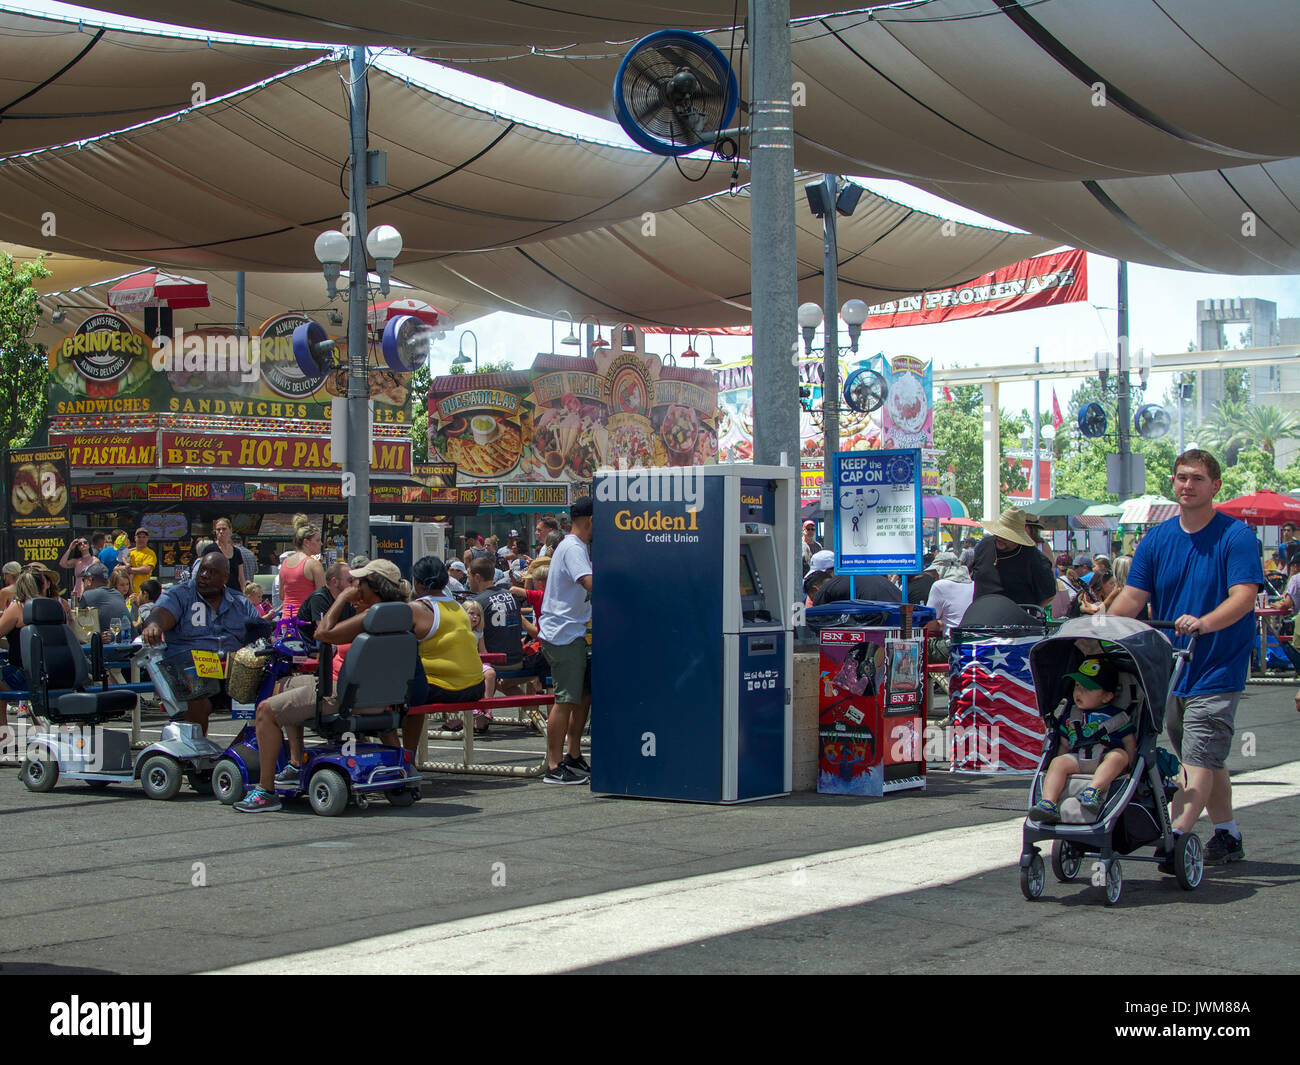 Sacramento, California, U.S.A. 23 July 2017.Golden 1 ATM at food court at the California State Fair at Cal Expo. The fair is annual and features Calif - Stock Image